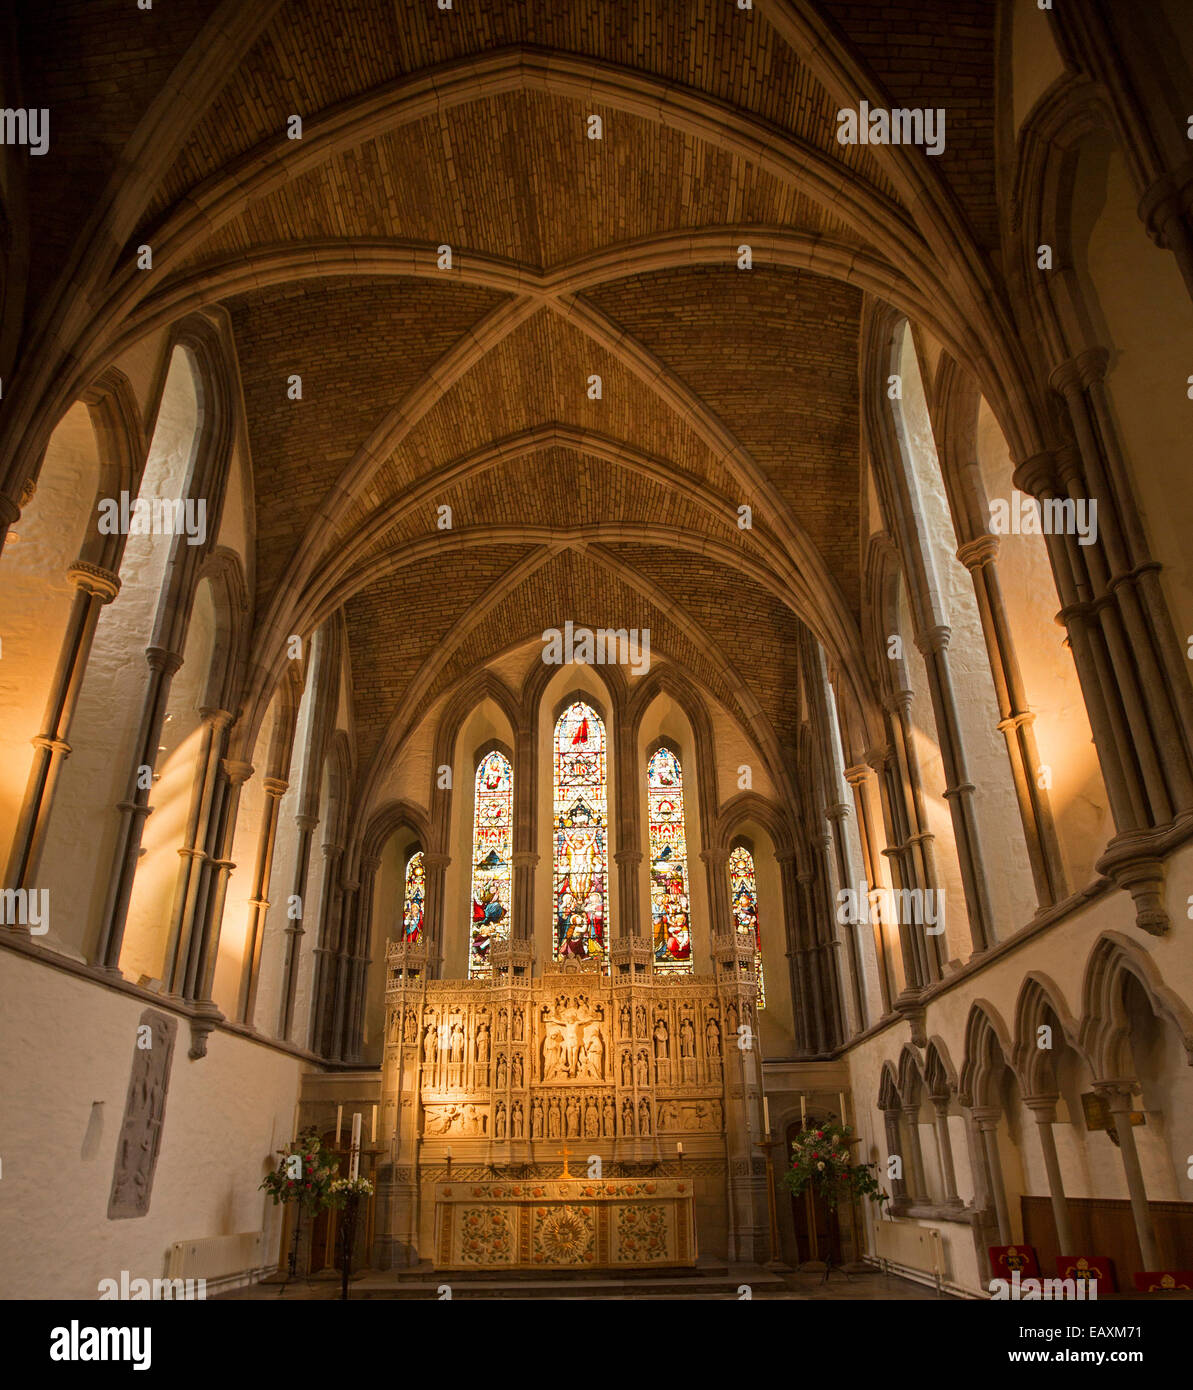 Interior of 11th century Brecon cathedral showing high nave with vaulted ceiling, stained glass windows & carved - Stock Image